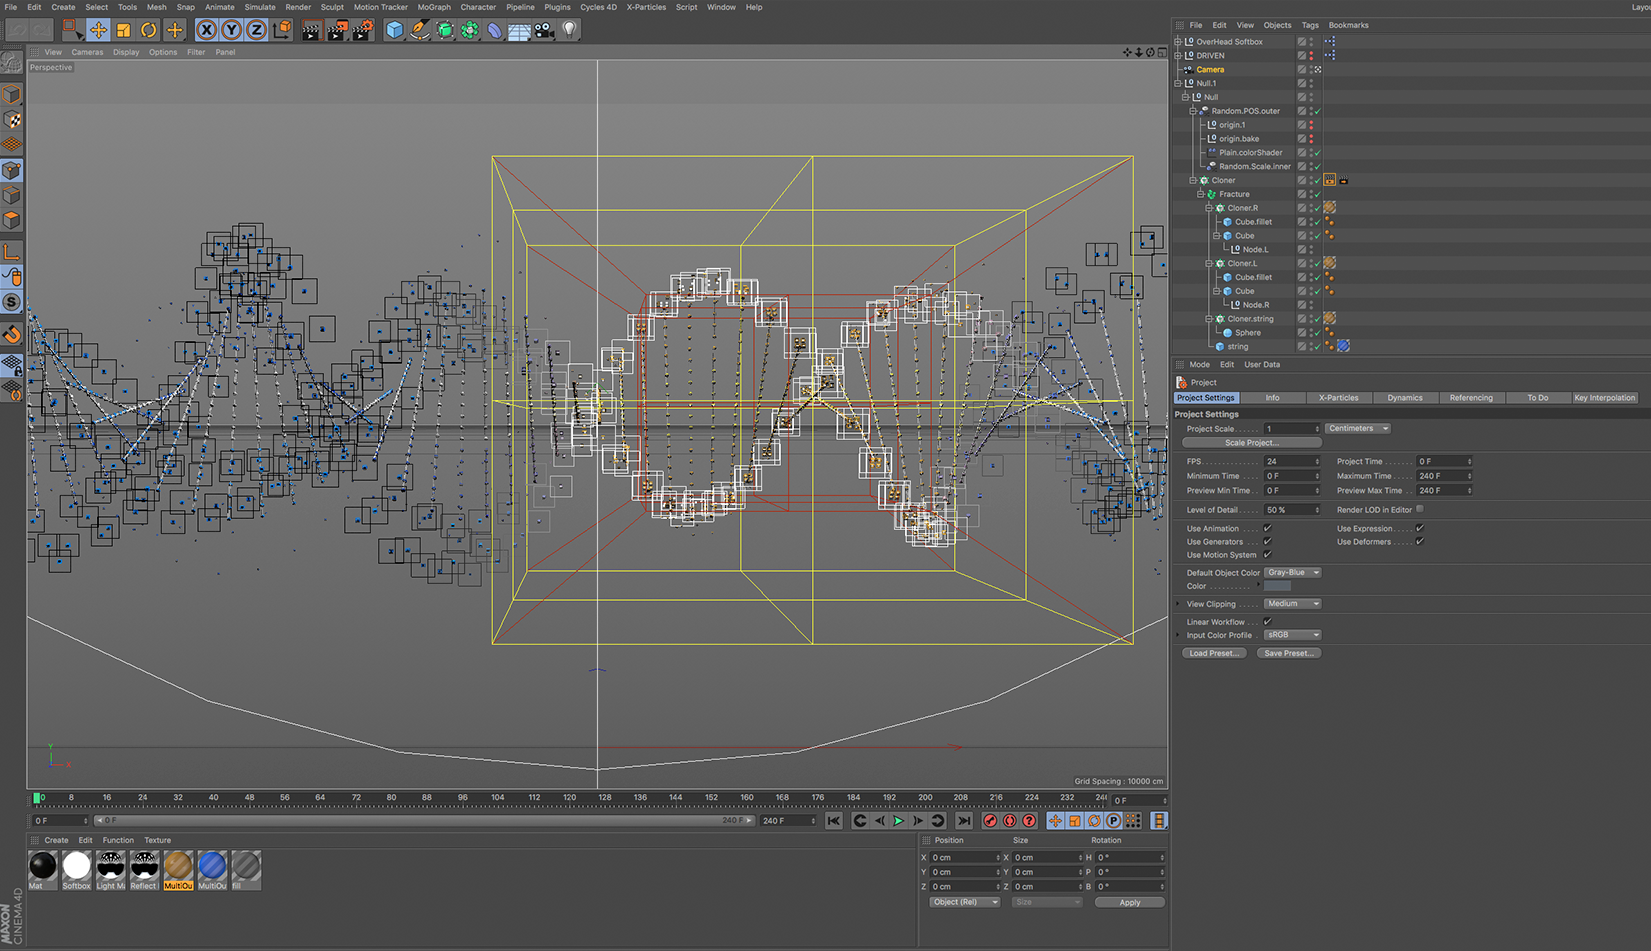 0006_dna-wip-6.png